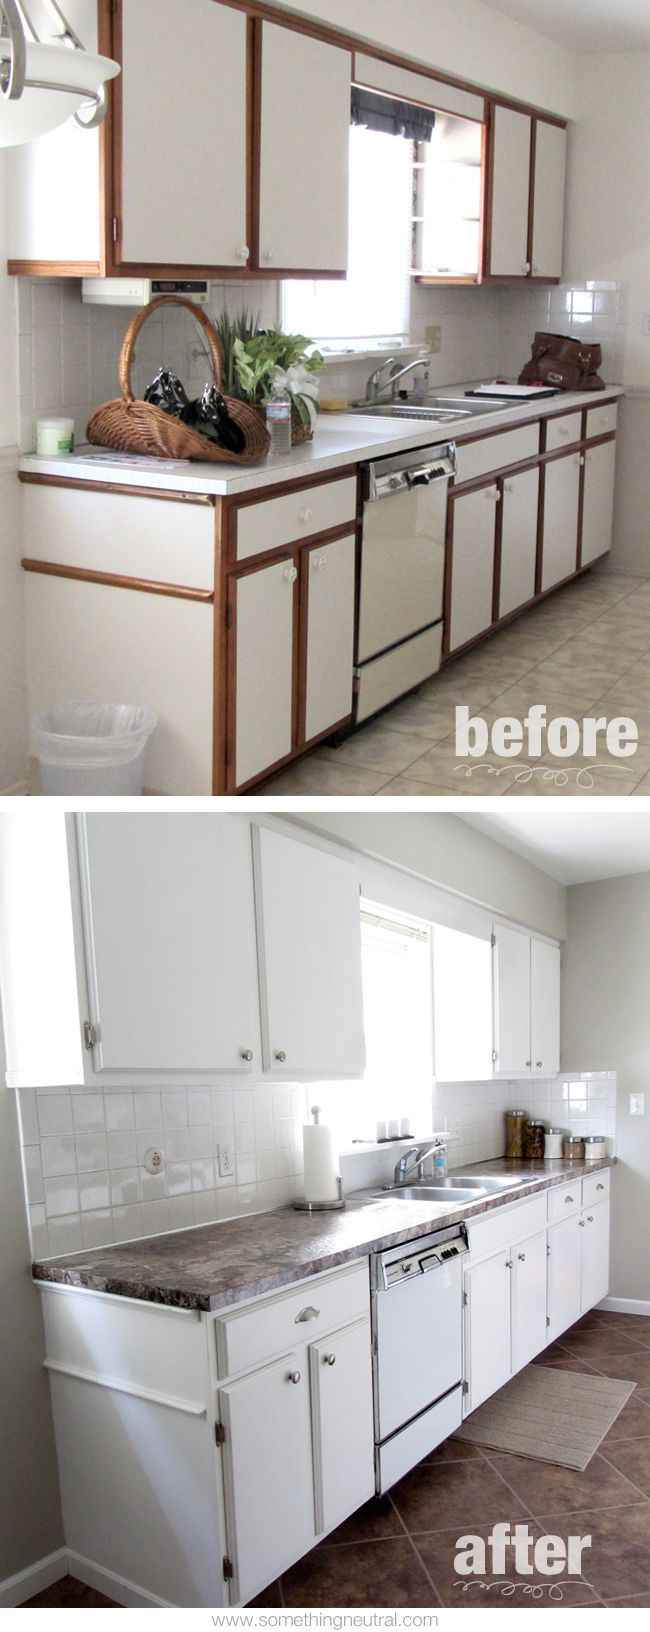 Kitchen Before After Diy Neutral Tan White Remodel Cabinets Hardware Paint Laminate Countertops Flooring Flip